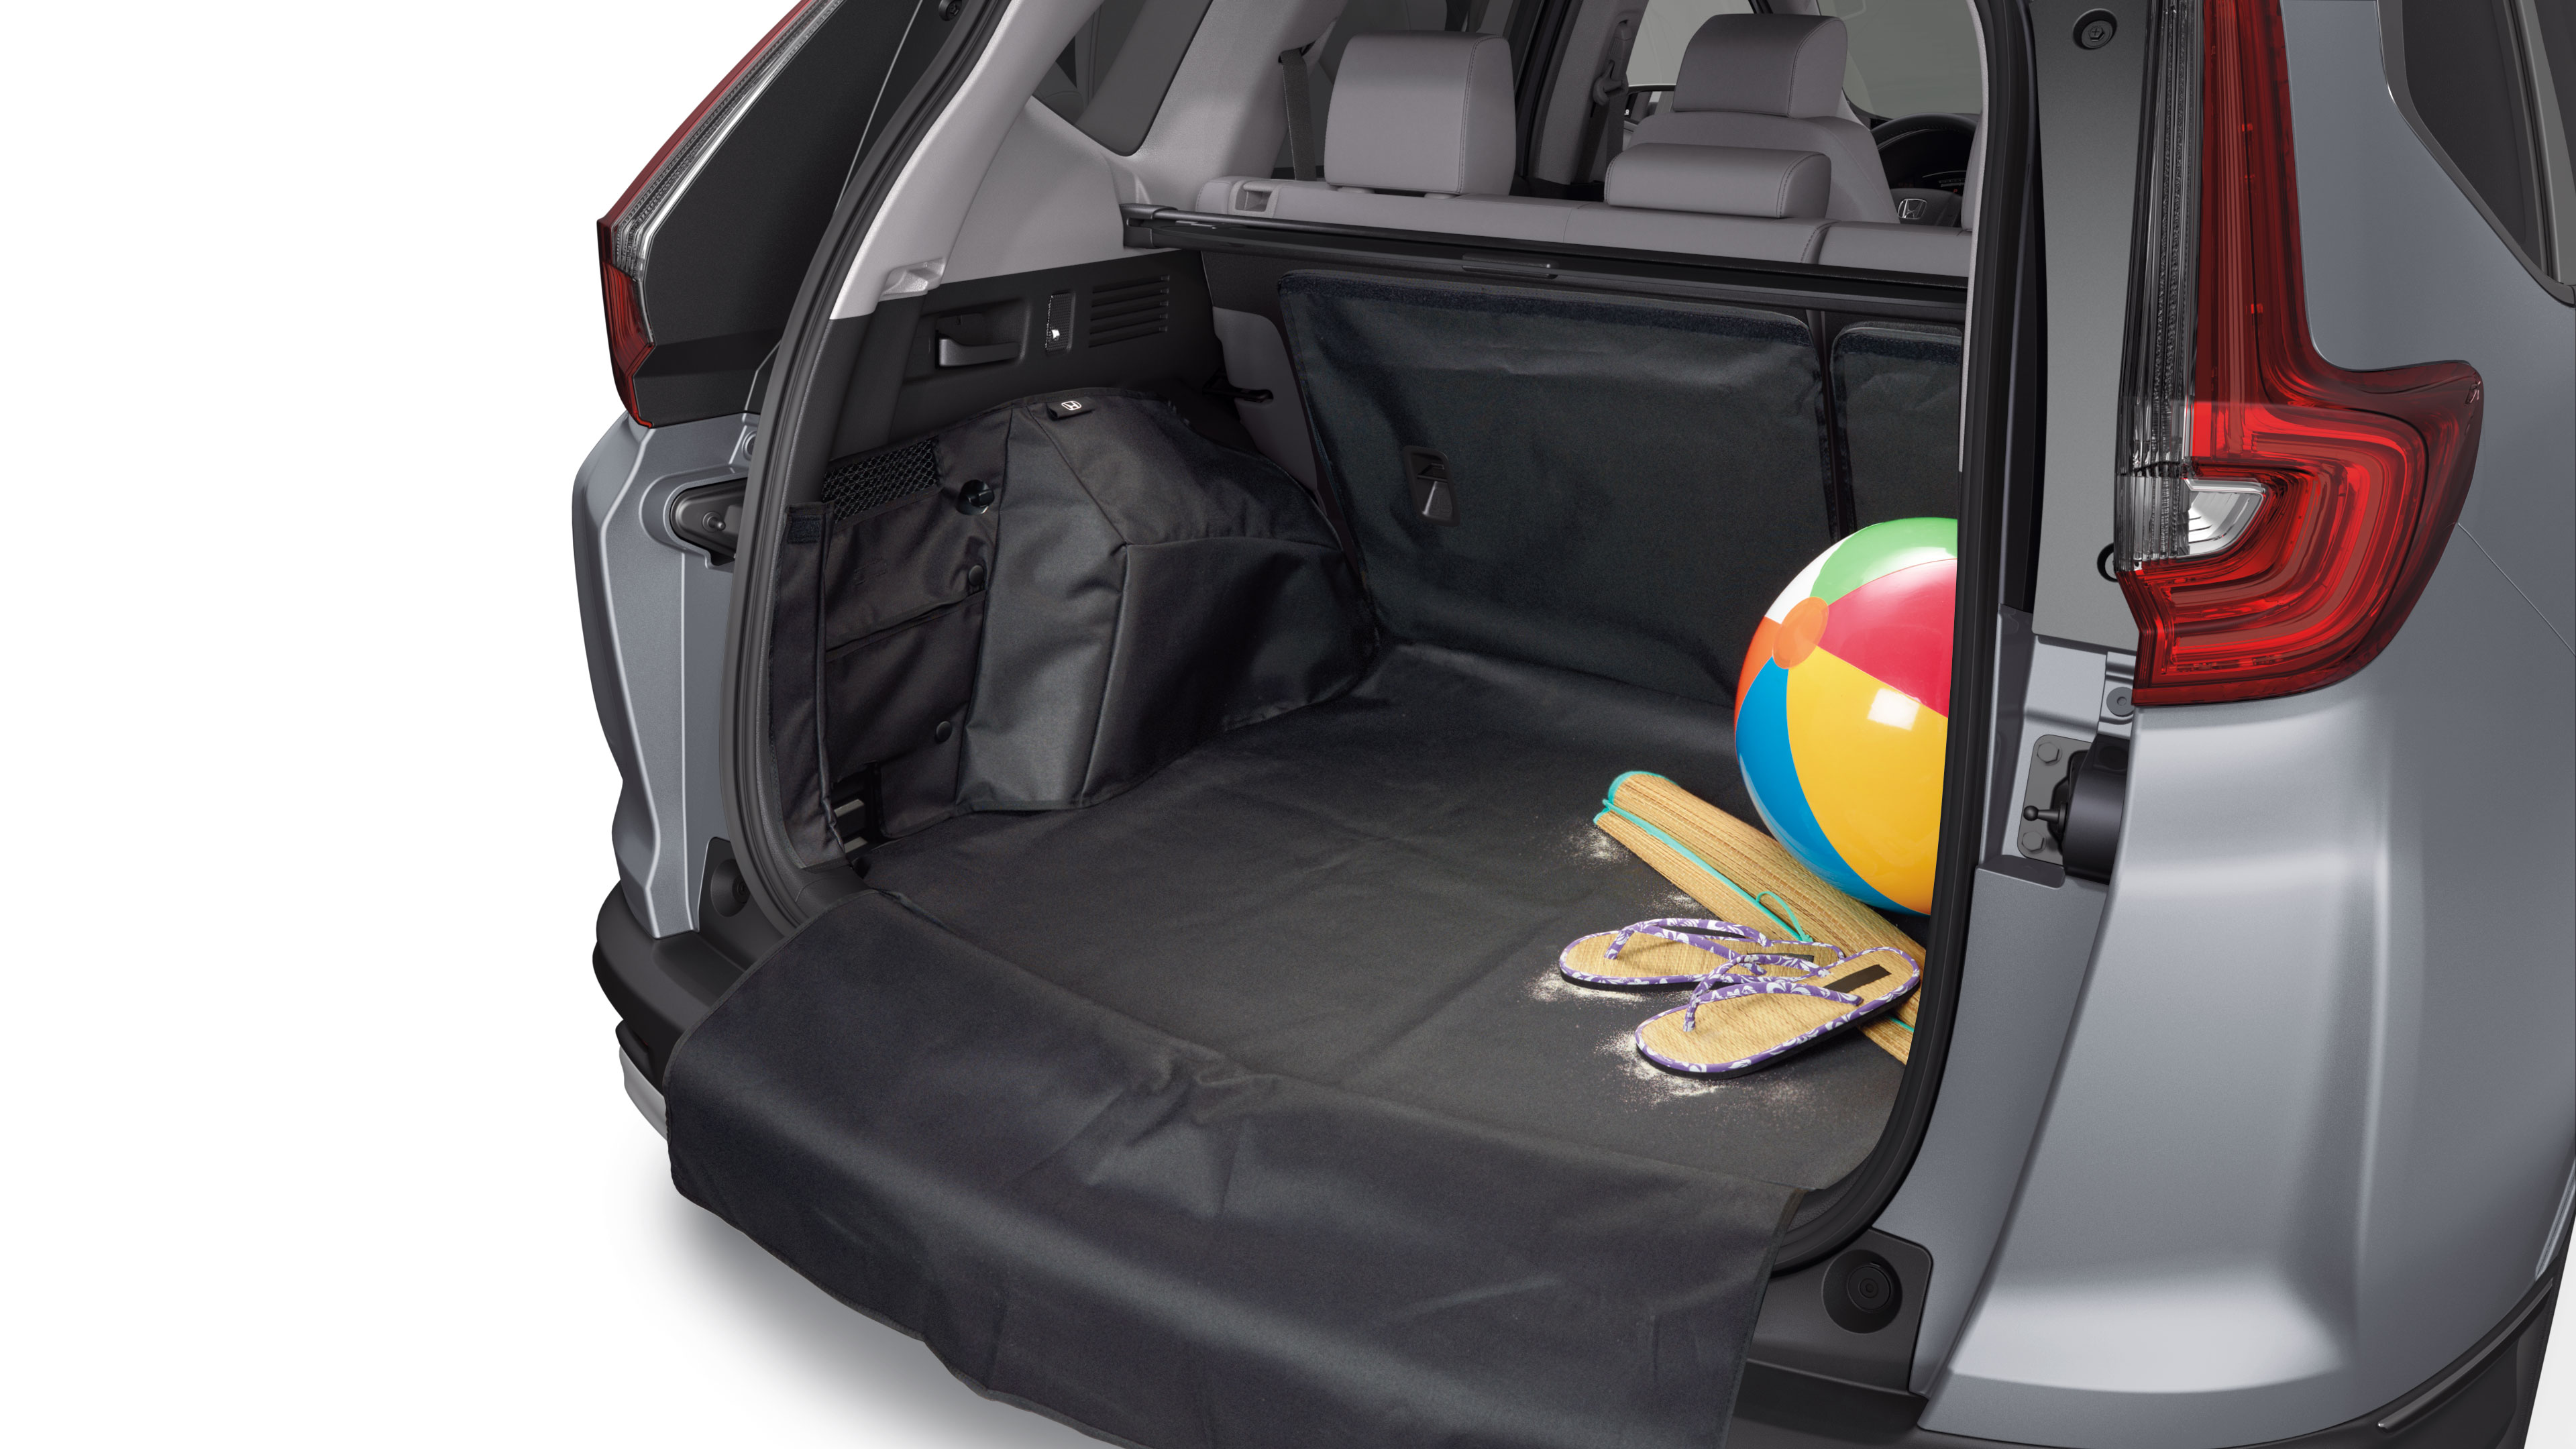 2016 Honda Crv Glue Recommendations For Trunk Area Cars